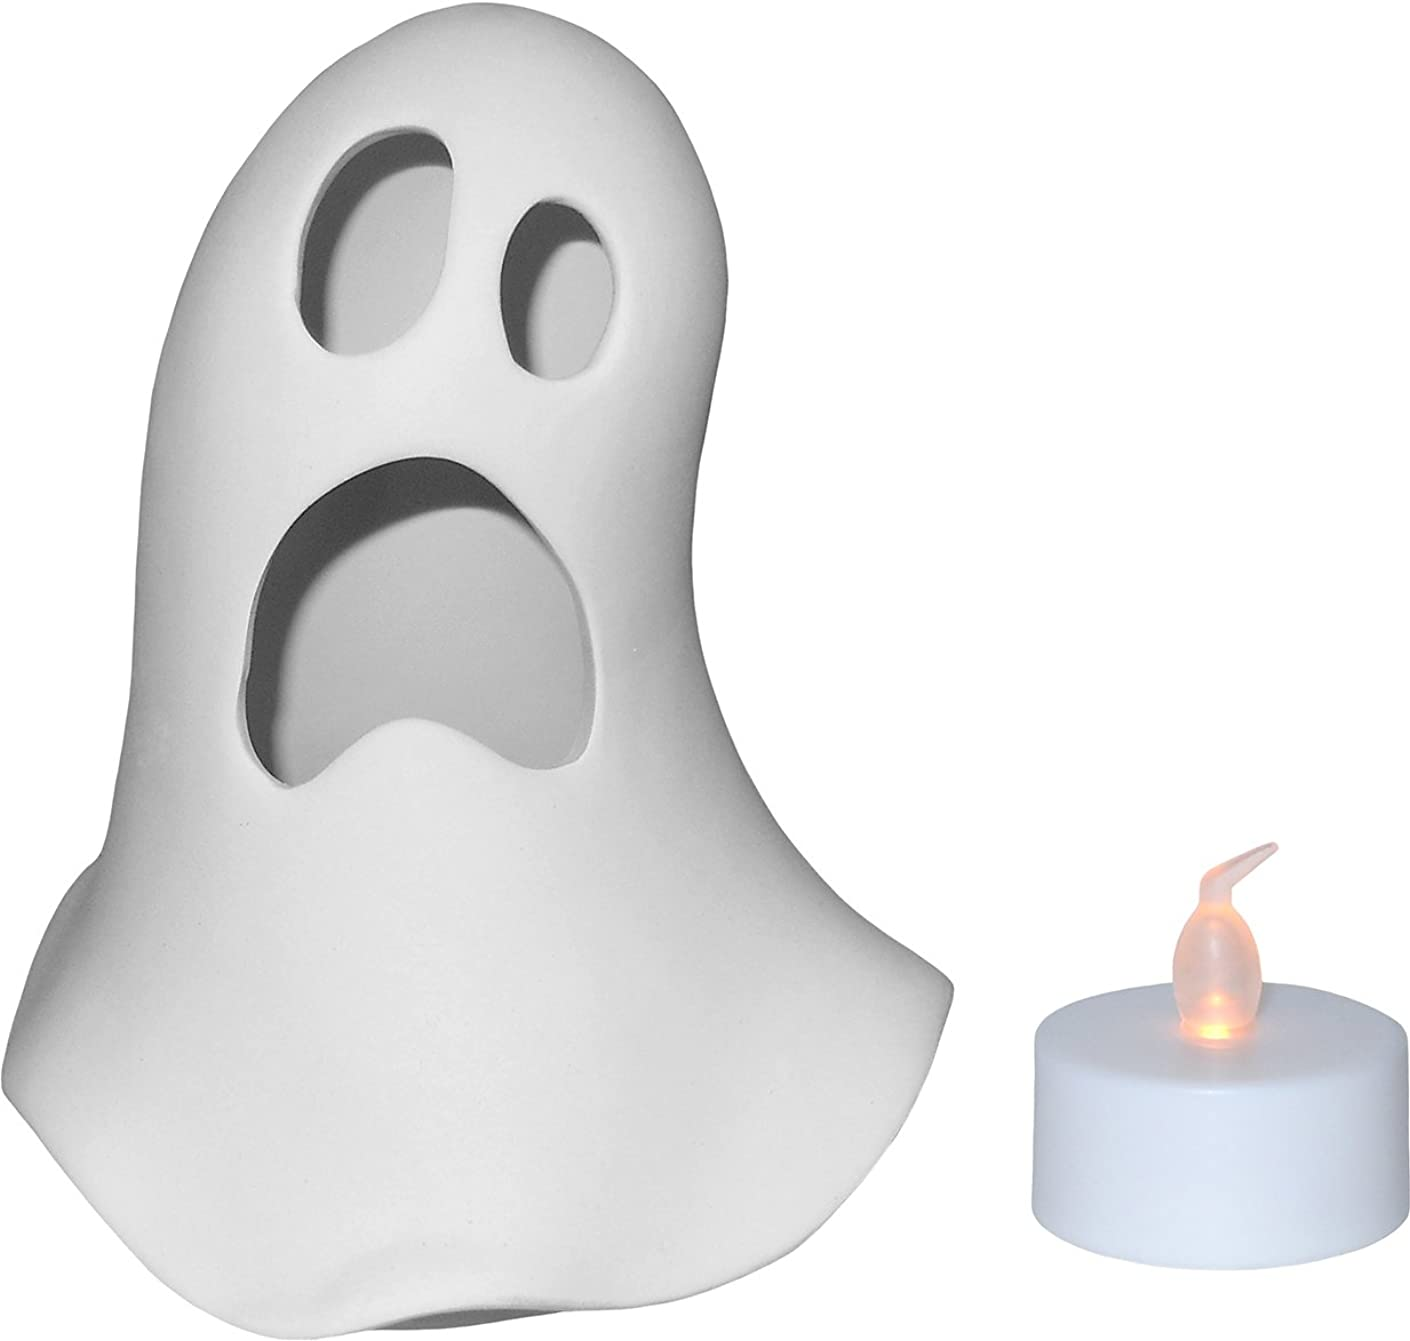 Spooky Ghost Votive Candle Holder and Battery Operated Tea Light Set - Paint Your Own Ceramic Keepsake